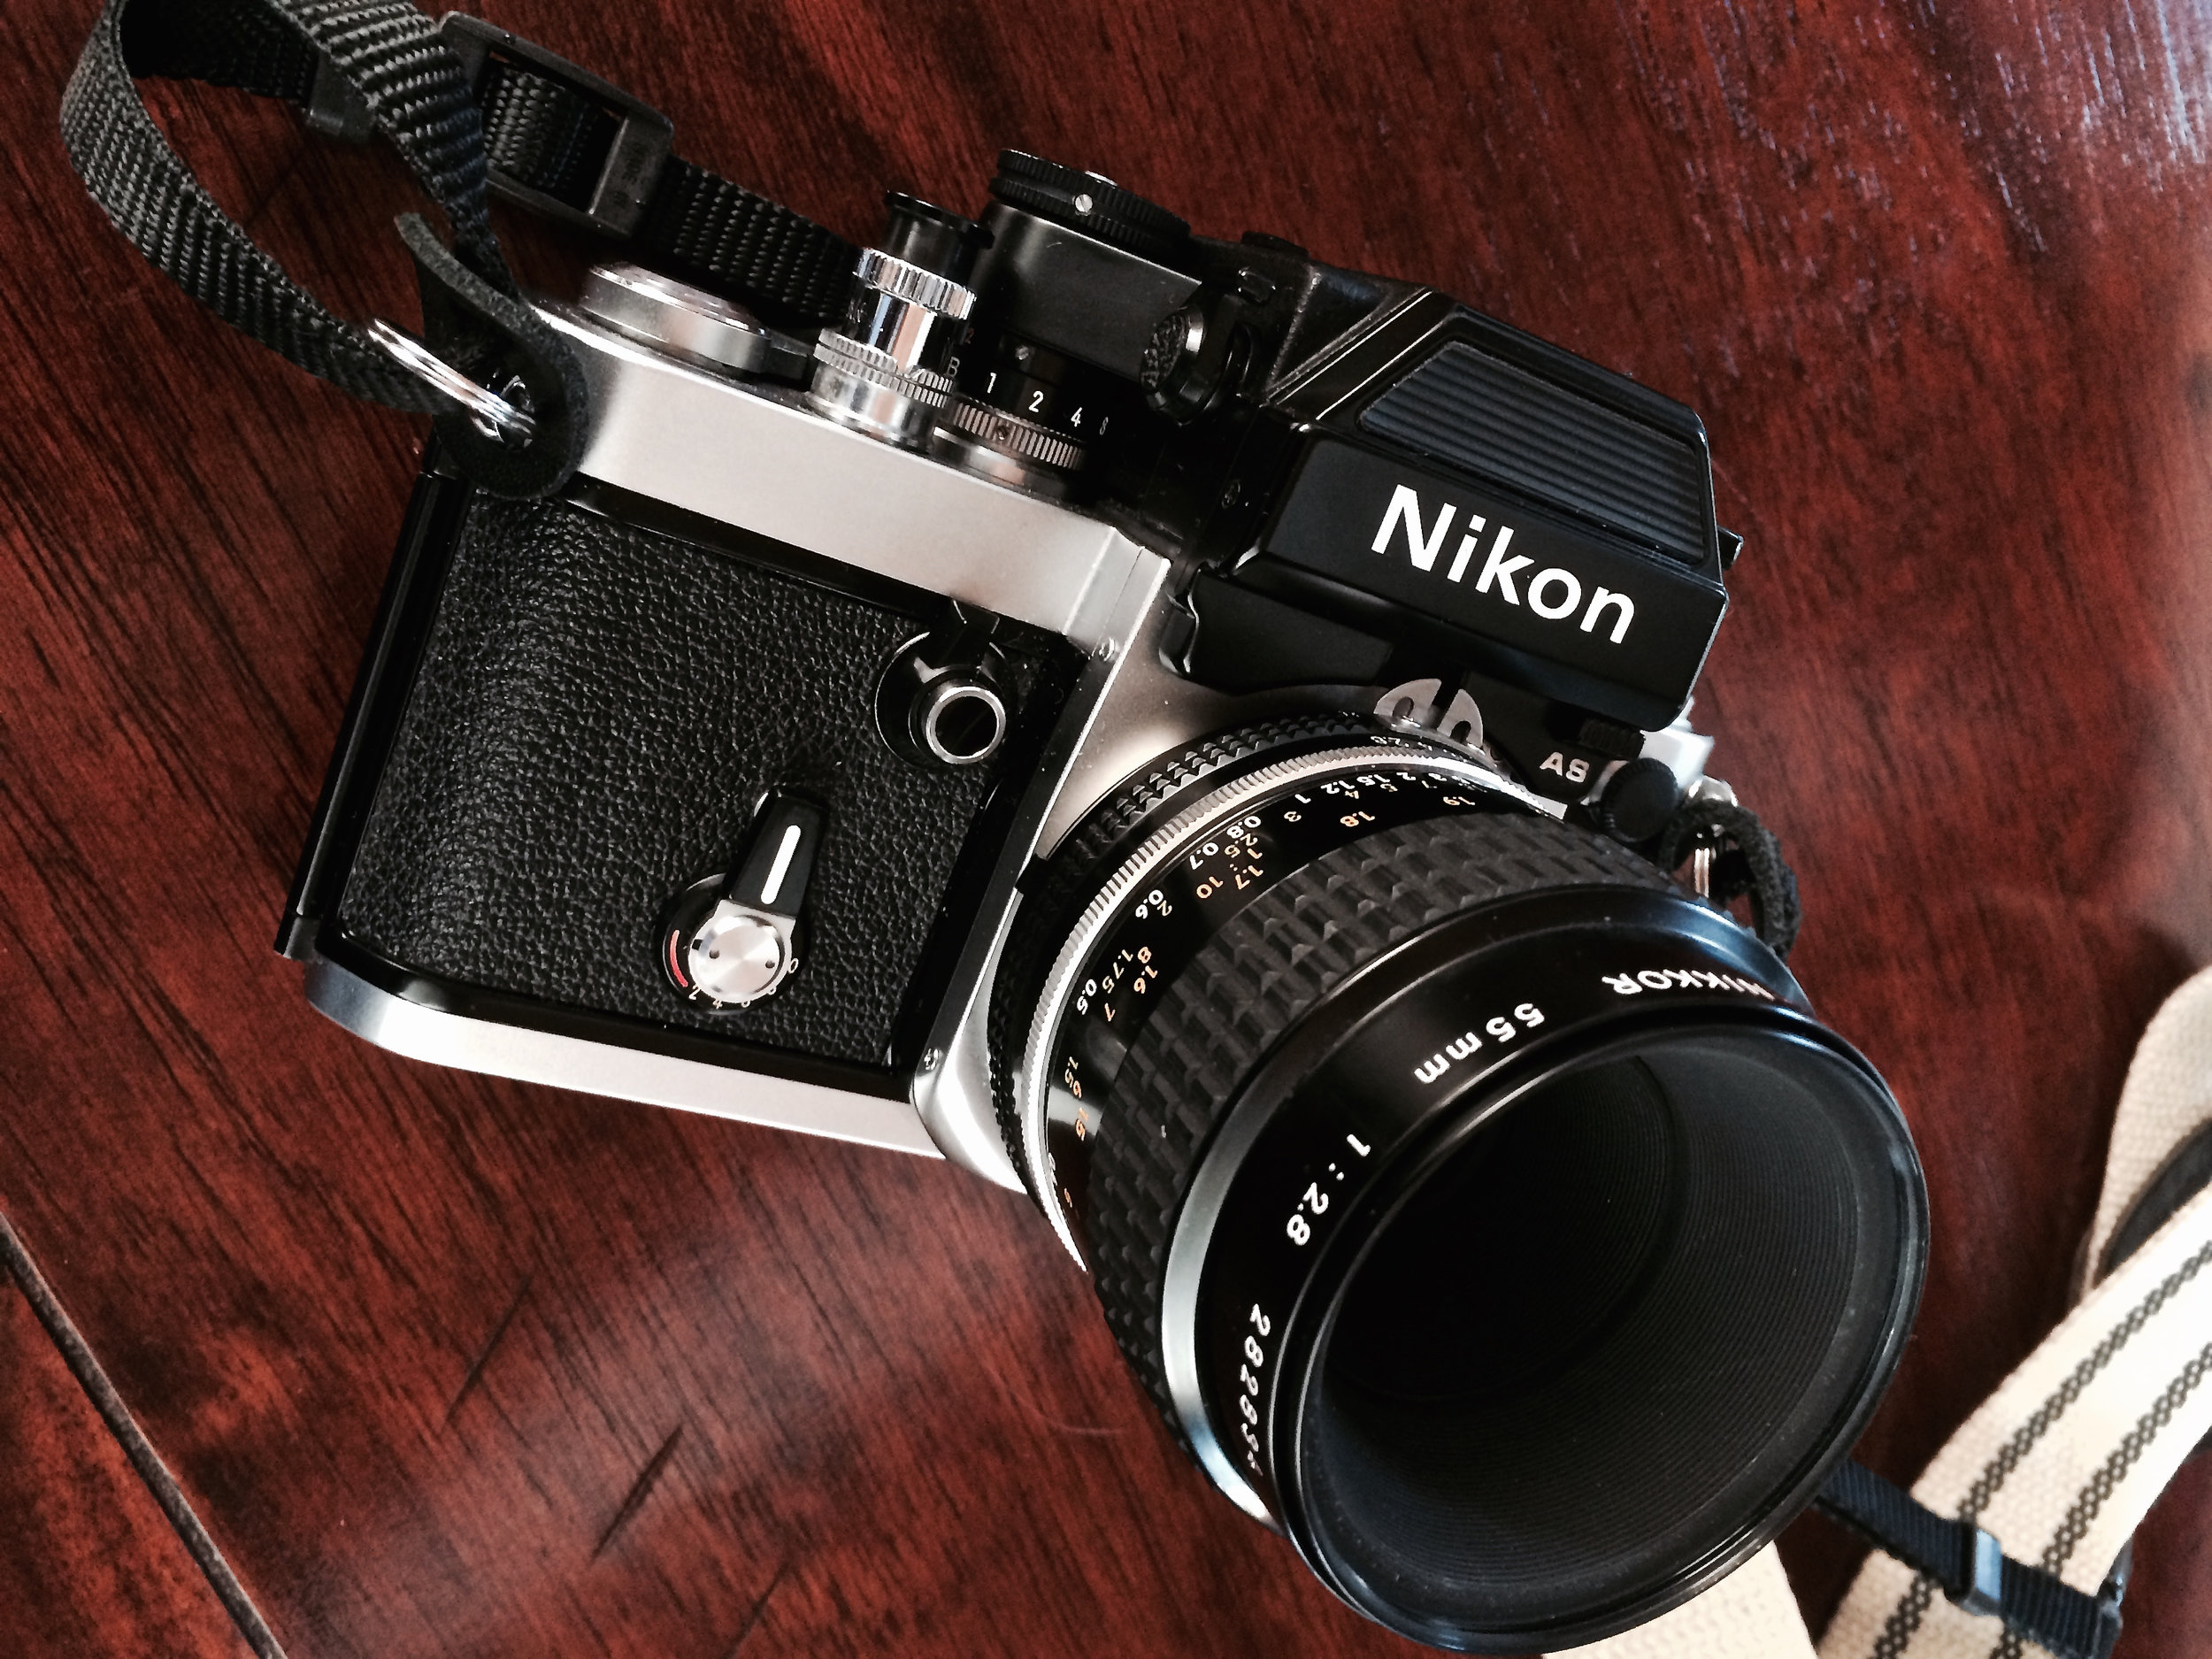 Nikon F2AS with 55mm f/2.8 Micro-Nikkor Lens